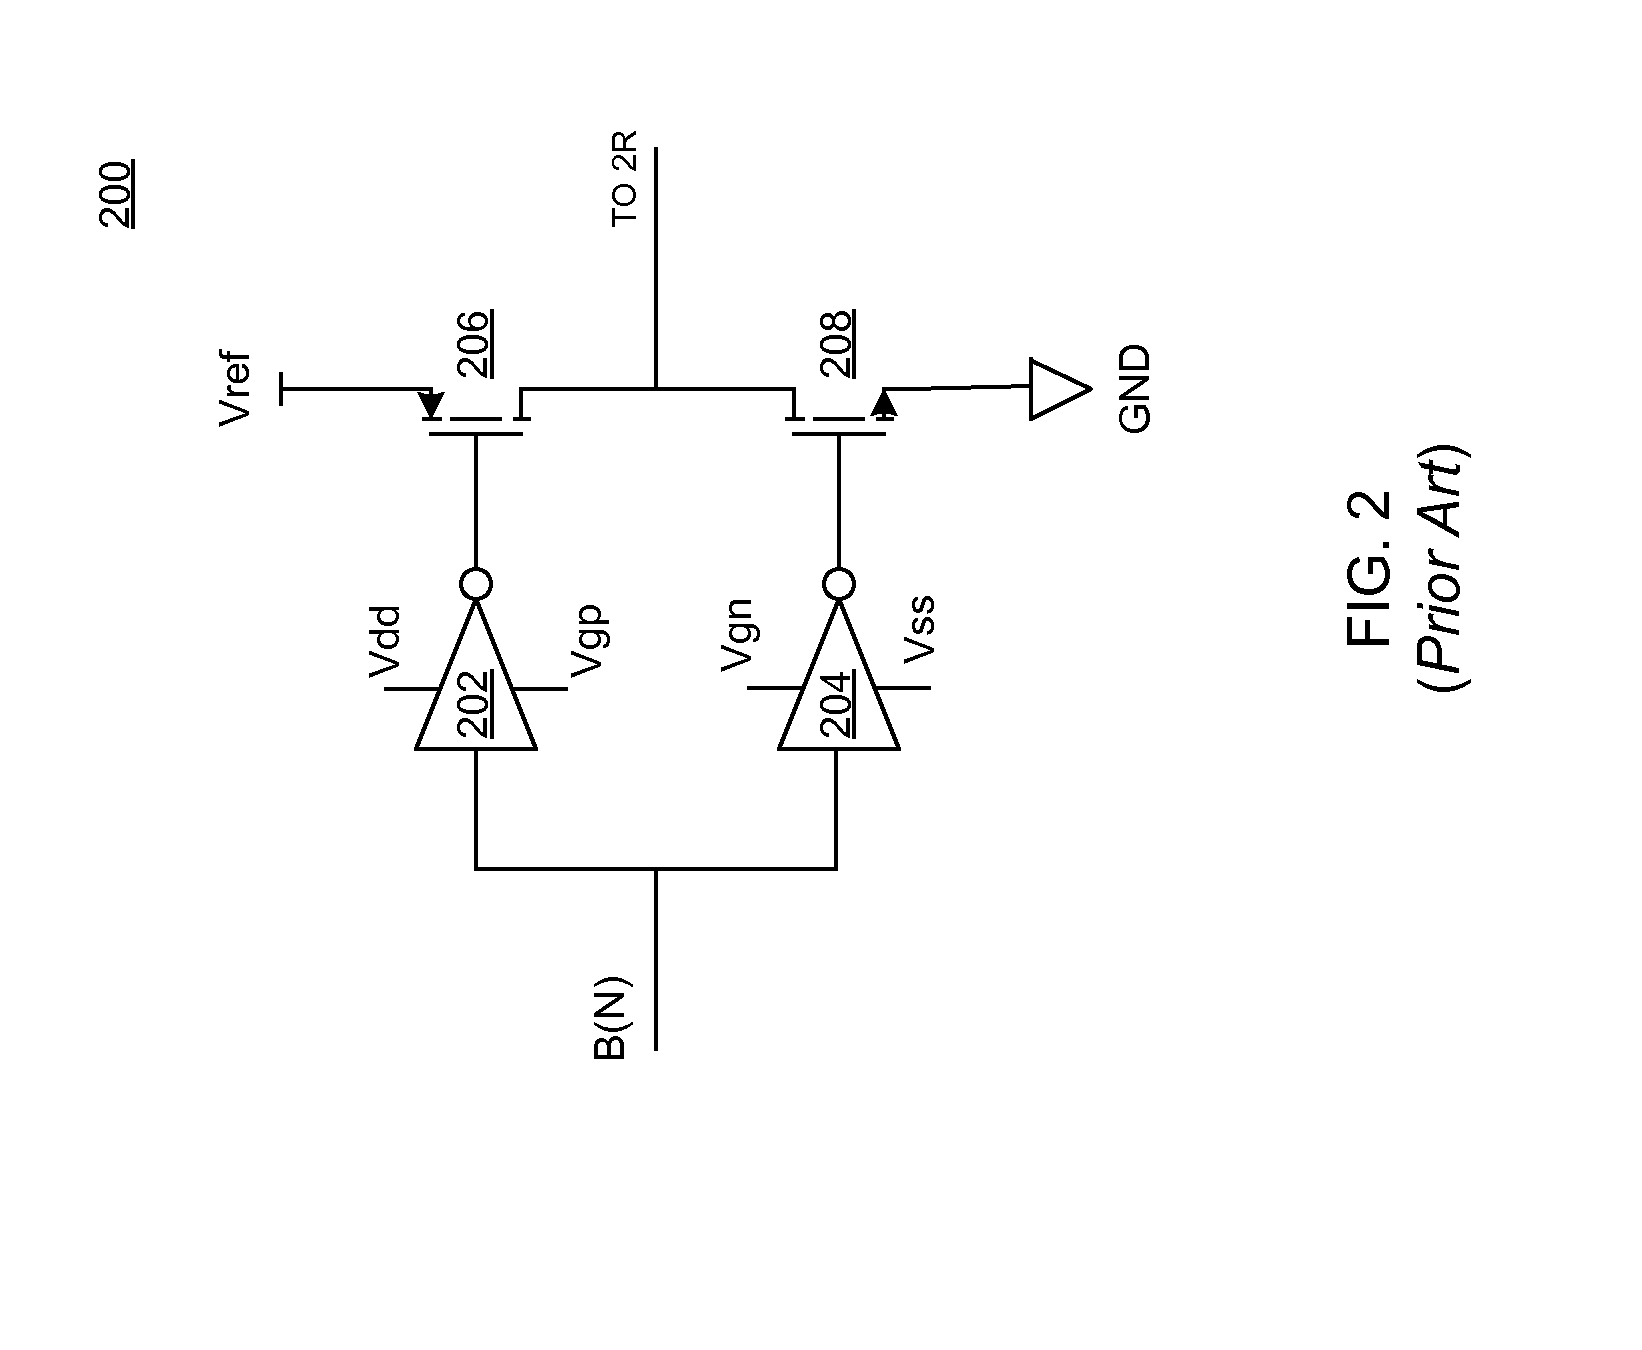 Patente Us8537043 Digital To Analog Converter With Controlled Gate R 2r Ladder Dac Circuit Diagram Patent Drawing